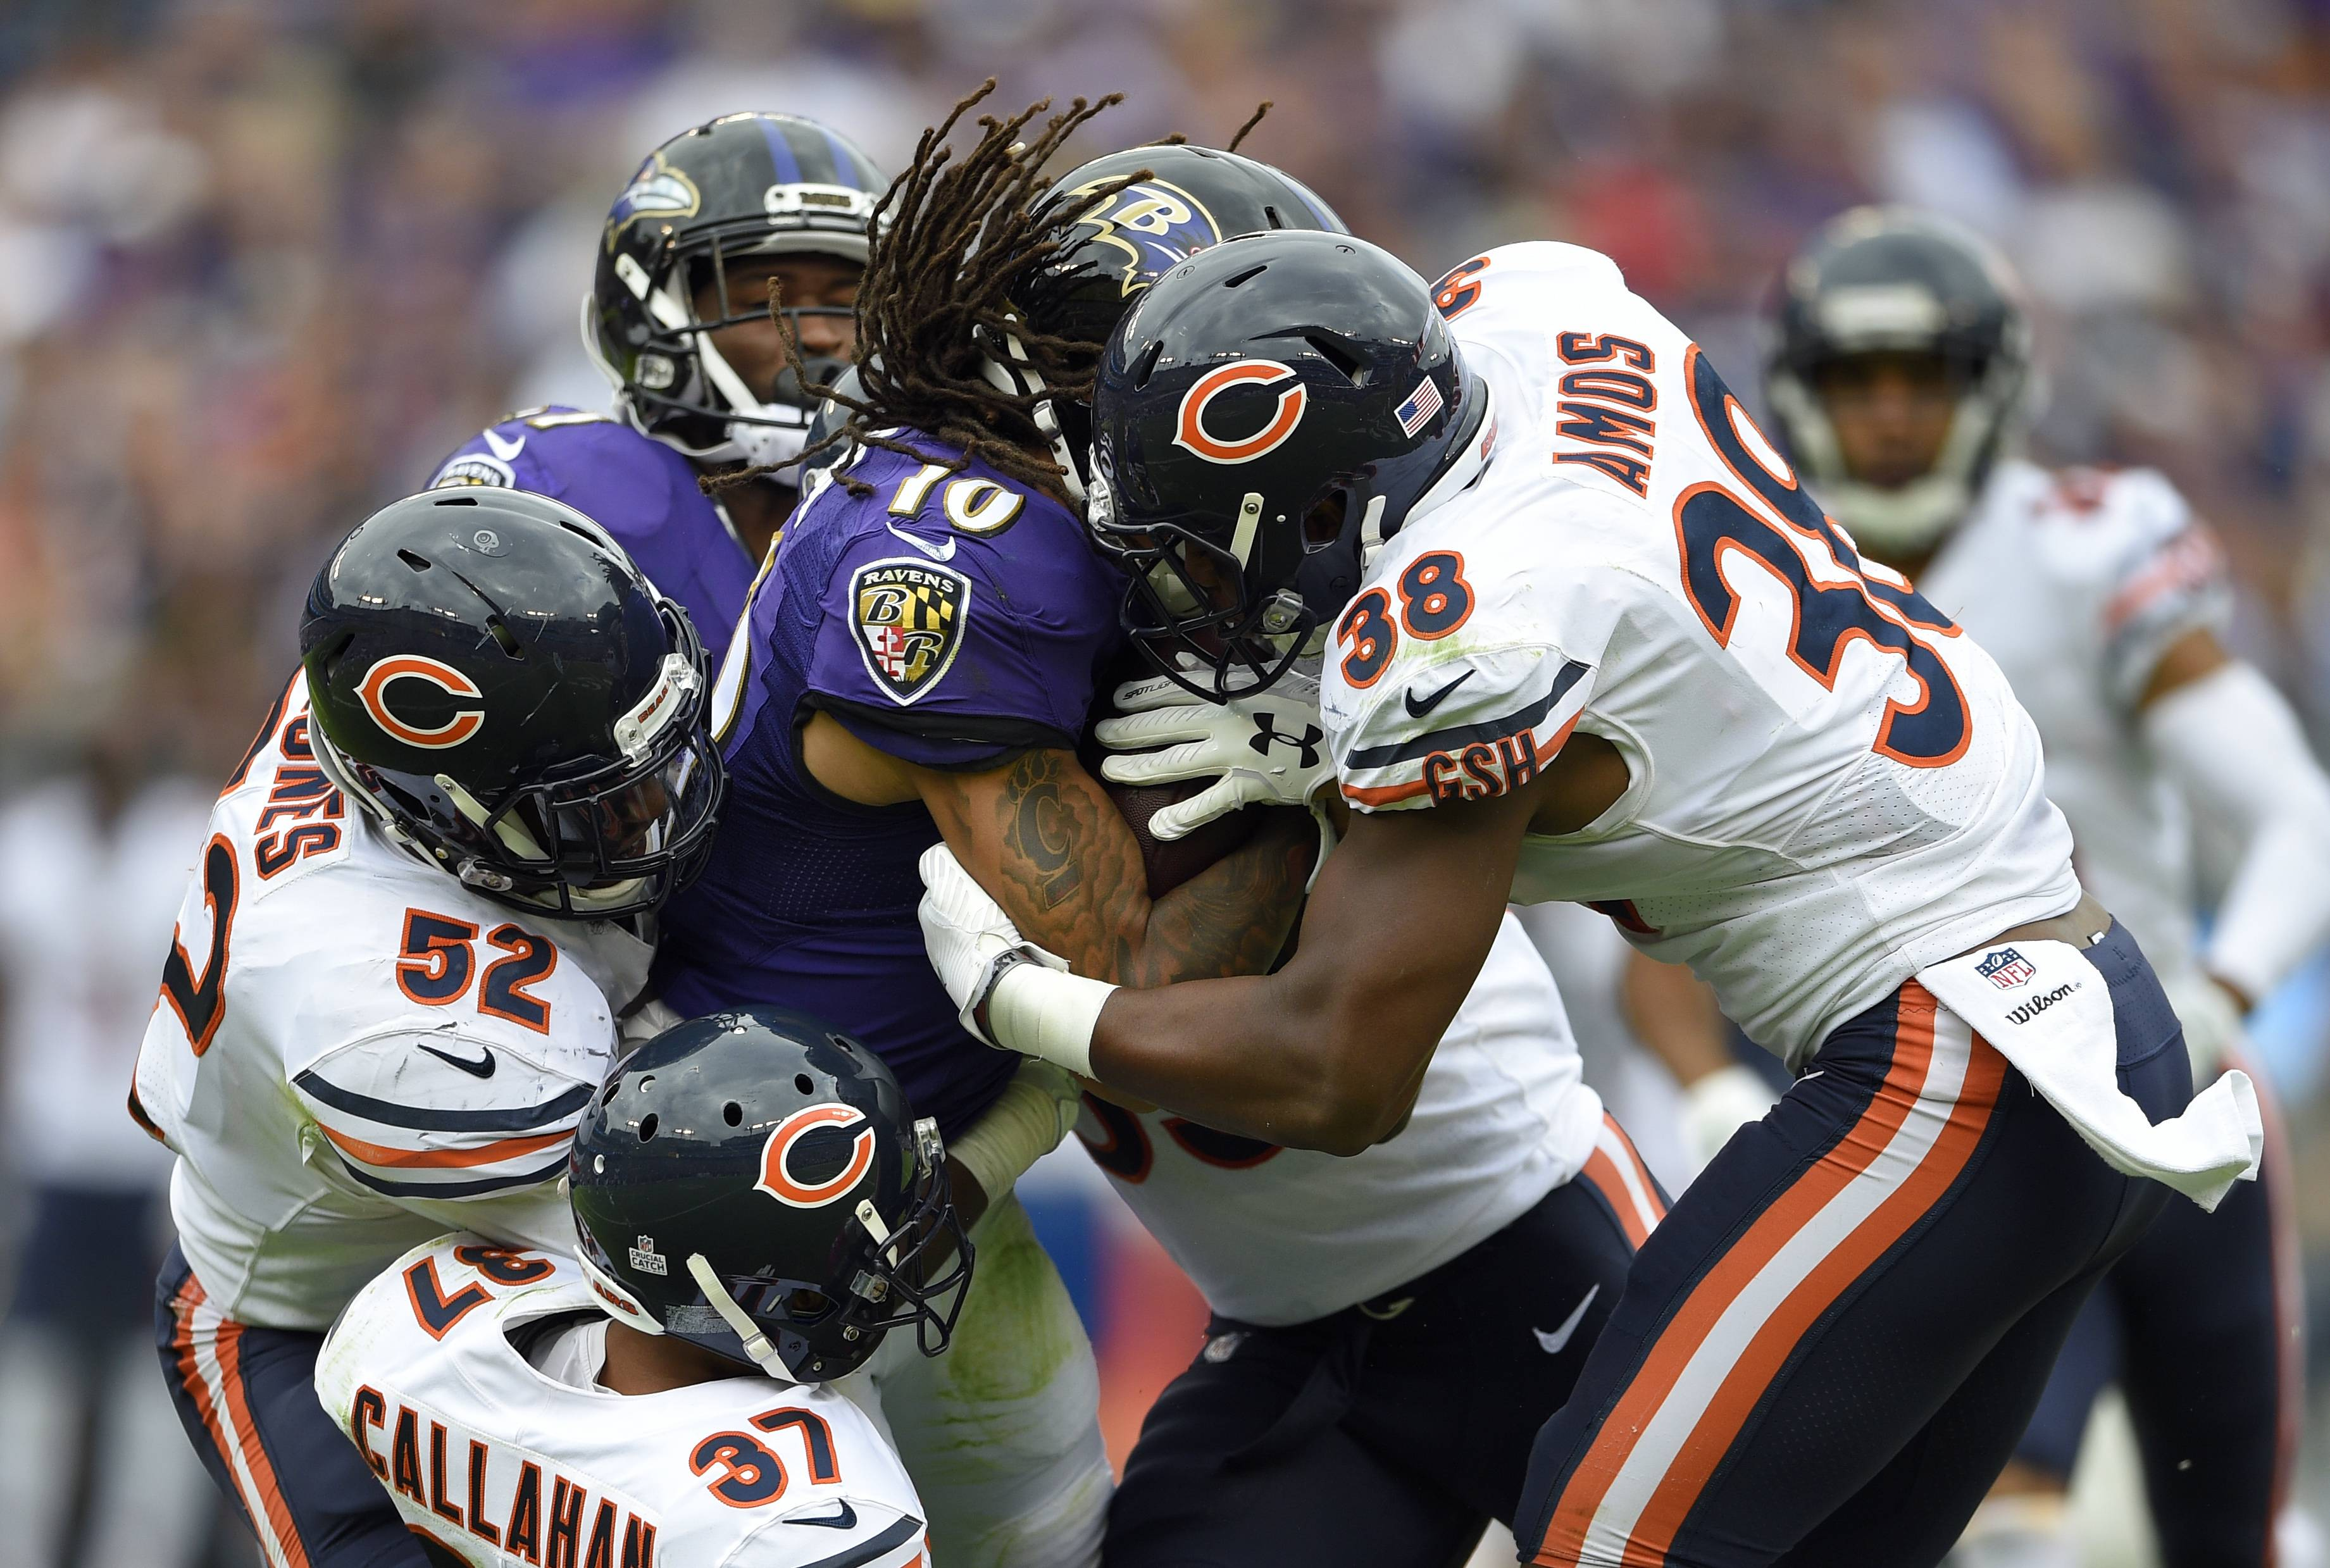 Baltimore Ravens wide receiver Chris Moore (10) is tackled by Chicago Bears defenders as he rushes the ball in the second half of an NFL football game, Sunday, Oct. 15, 2017, in Baltimore.